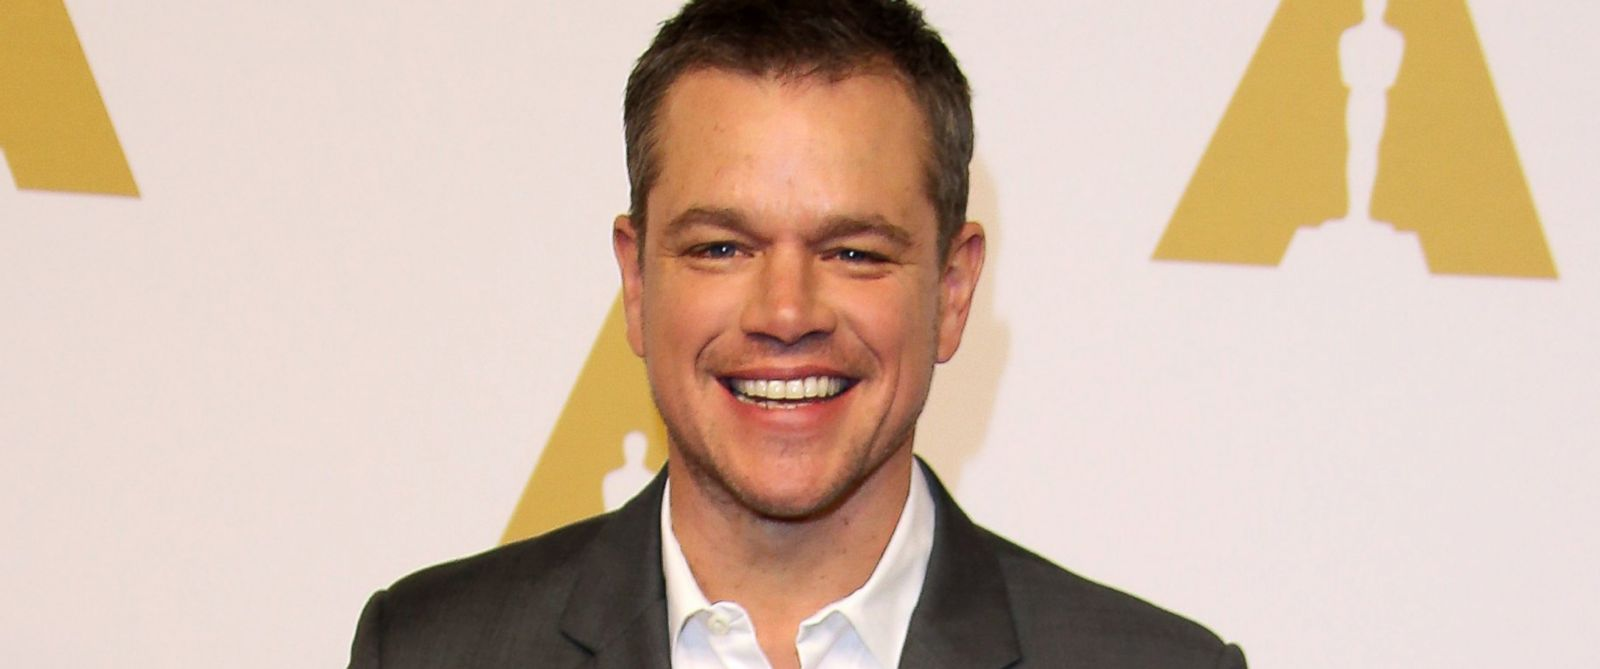 matt damon - photo #12